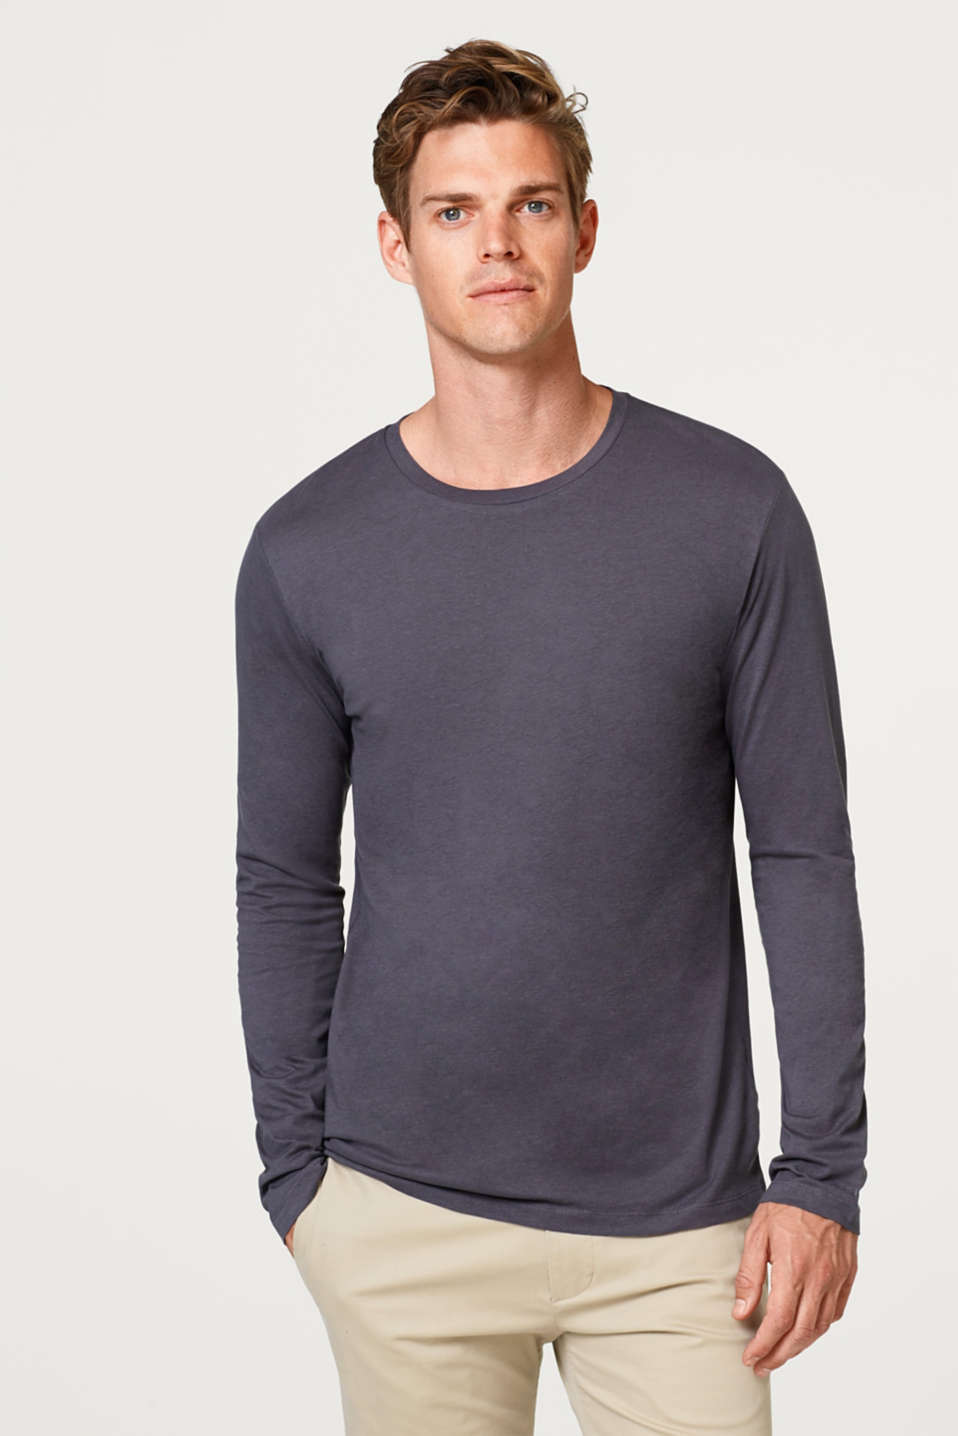 Esprit - Long sleeve jersey top in 100% cotton